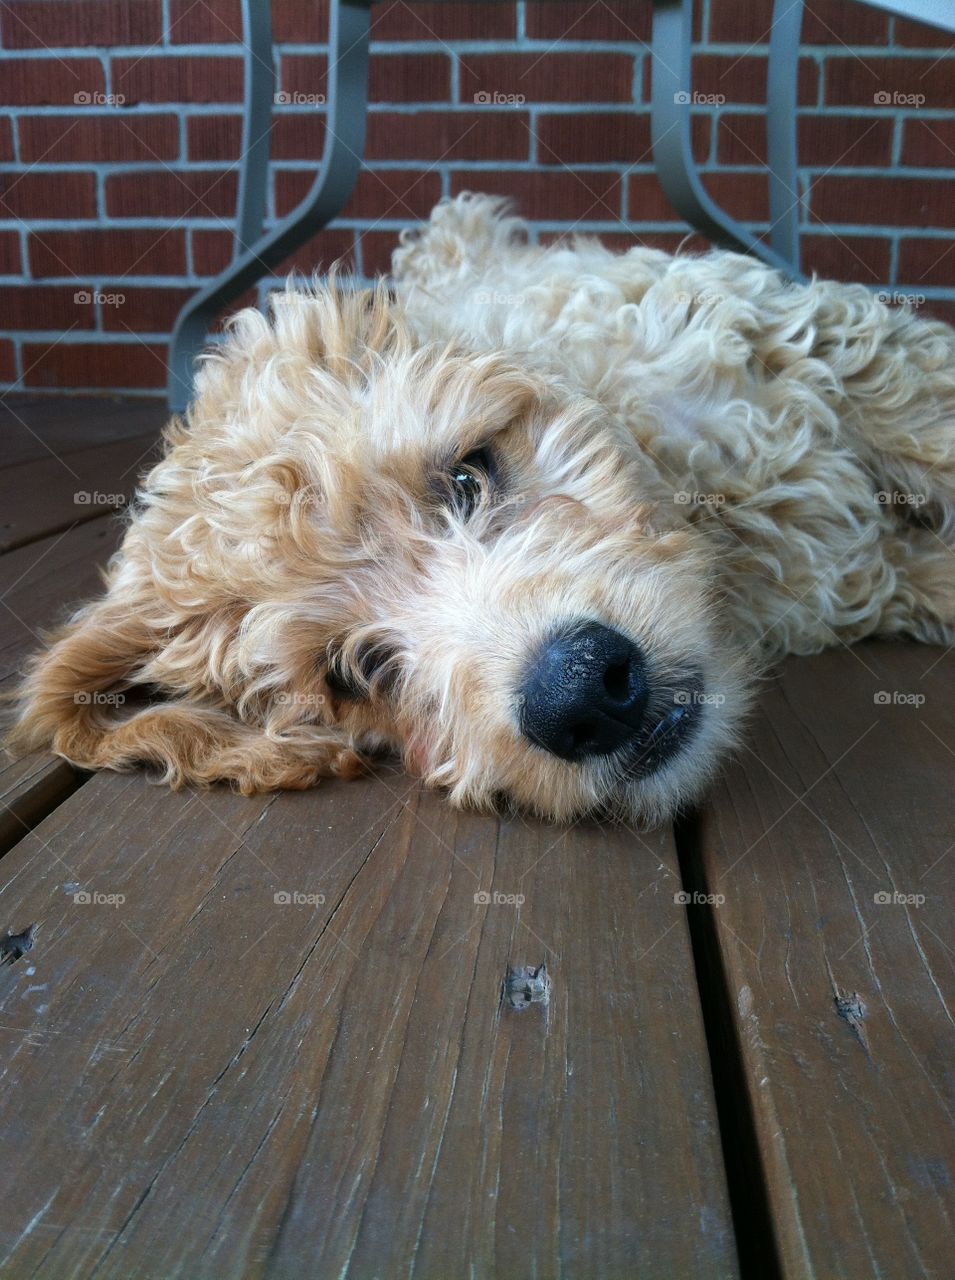 Goldendoodle. Dory the Doodle cooling off on the deck